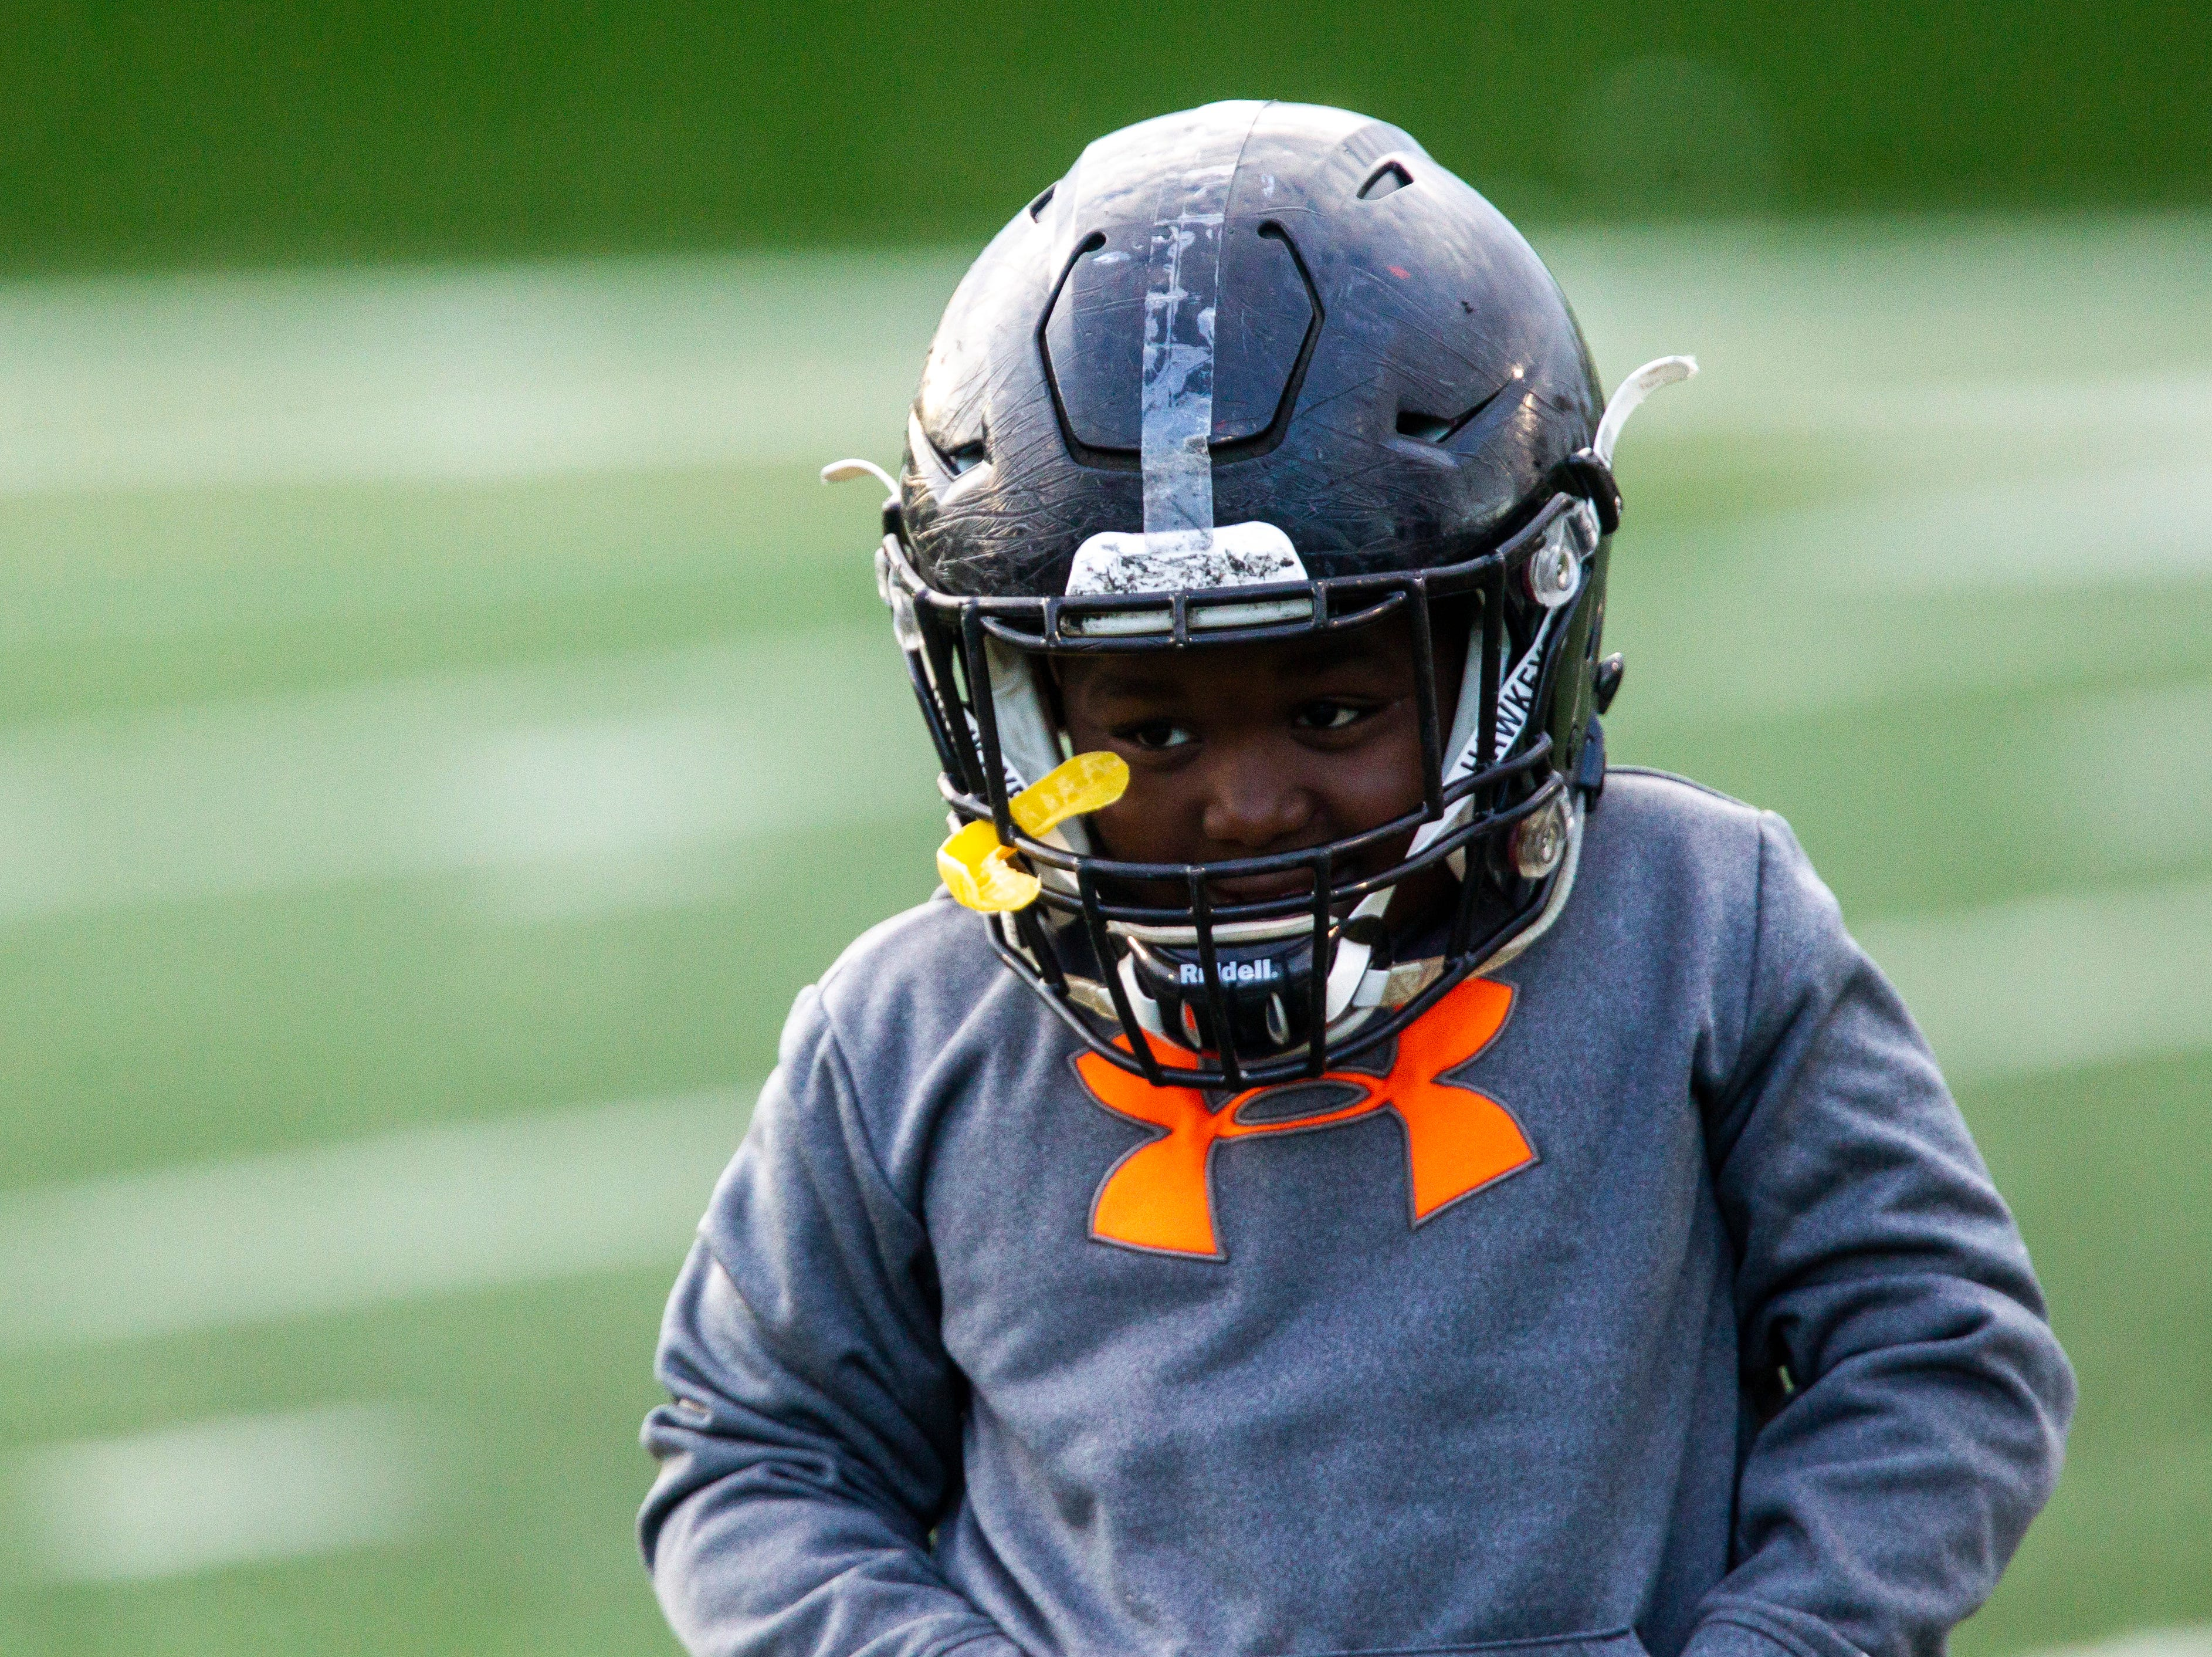 Iowa defensive tackle Daviyon Nixon's brother, Kevyn K.G. Nixon, 7, wears his helmet after the final spring football practice, Friday, April 26, 2019, at the University of Iowa outdoor practice facility in Iowa City, Iowa.